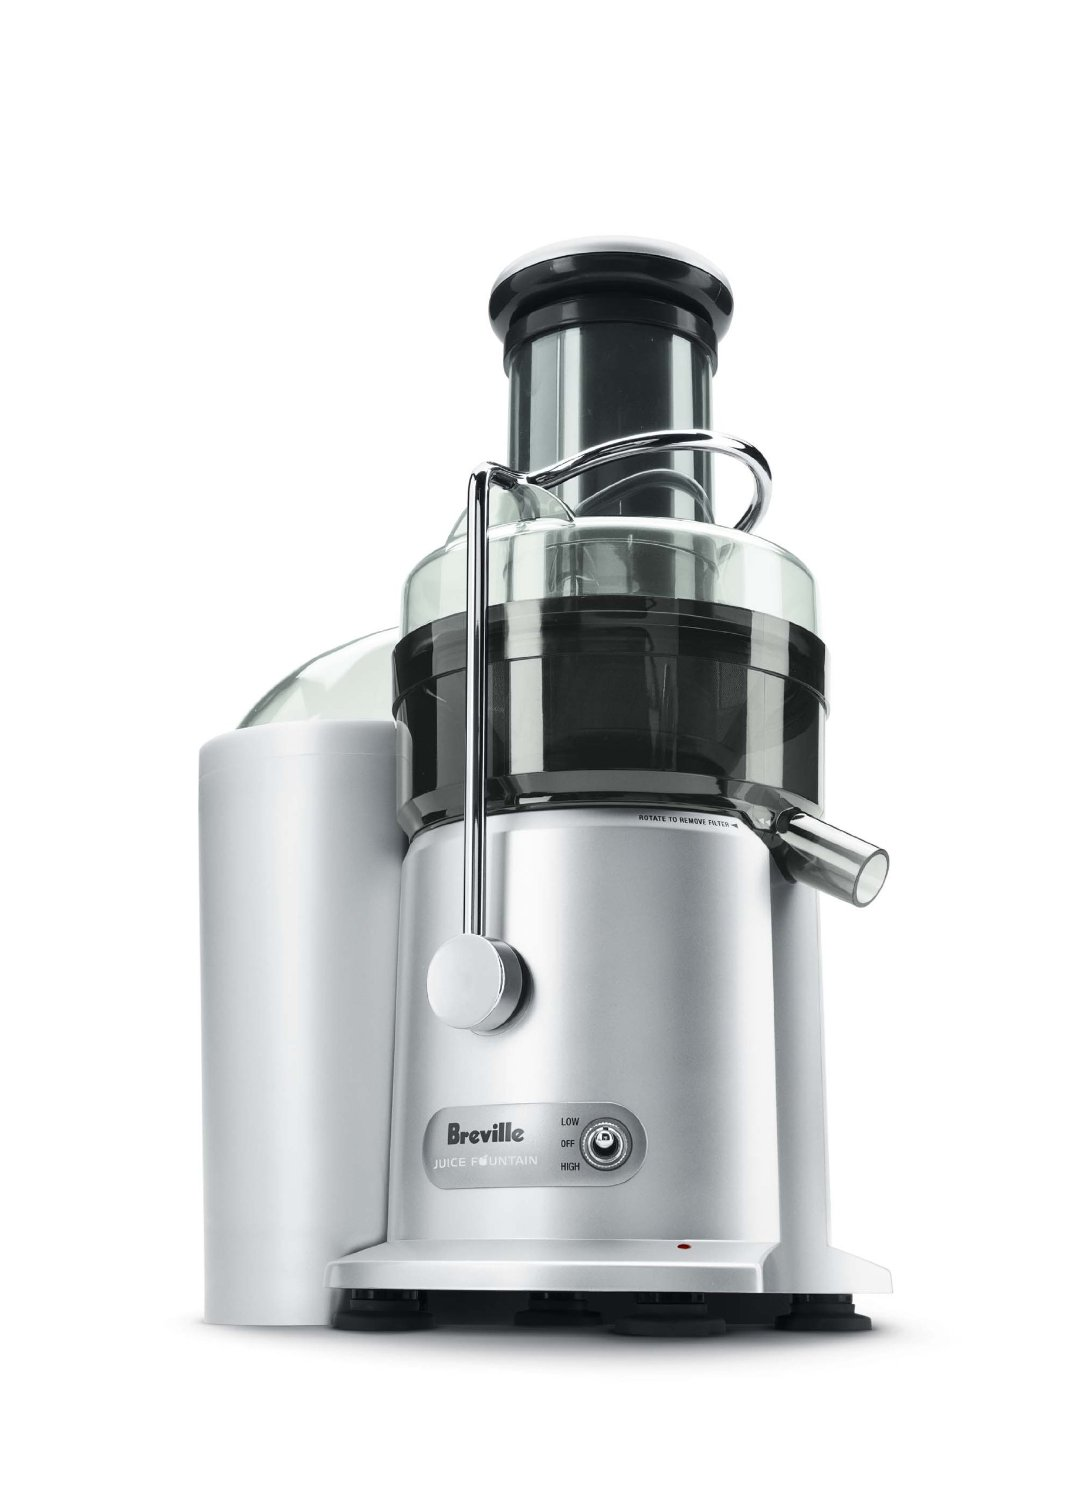 The Best Juicers of 2014: Reviewed and Compared